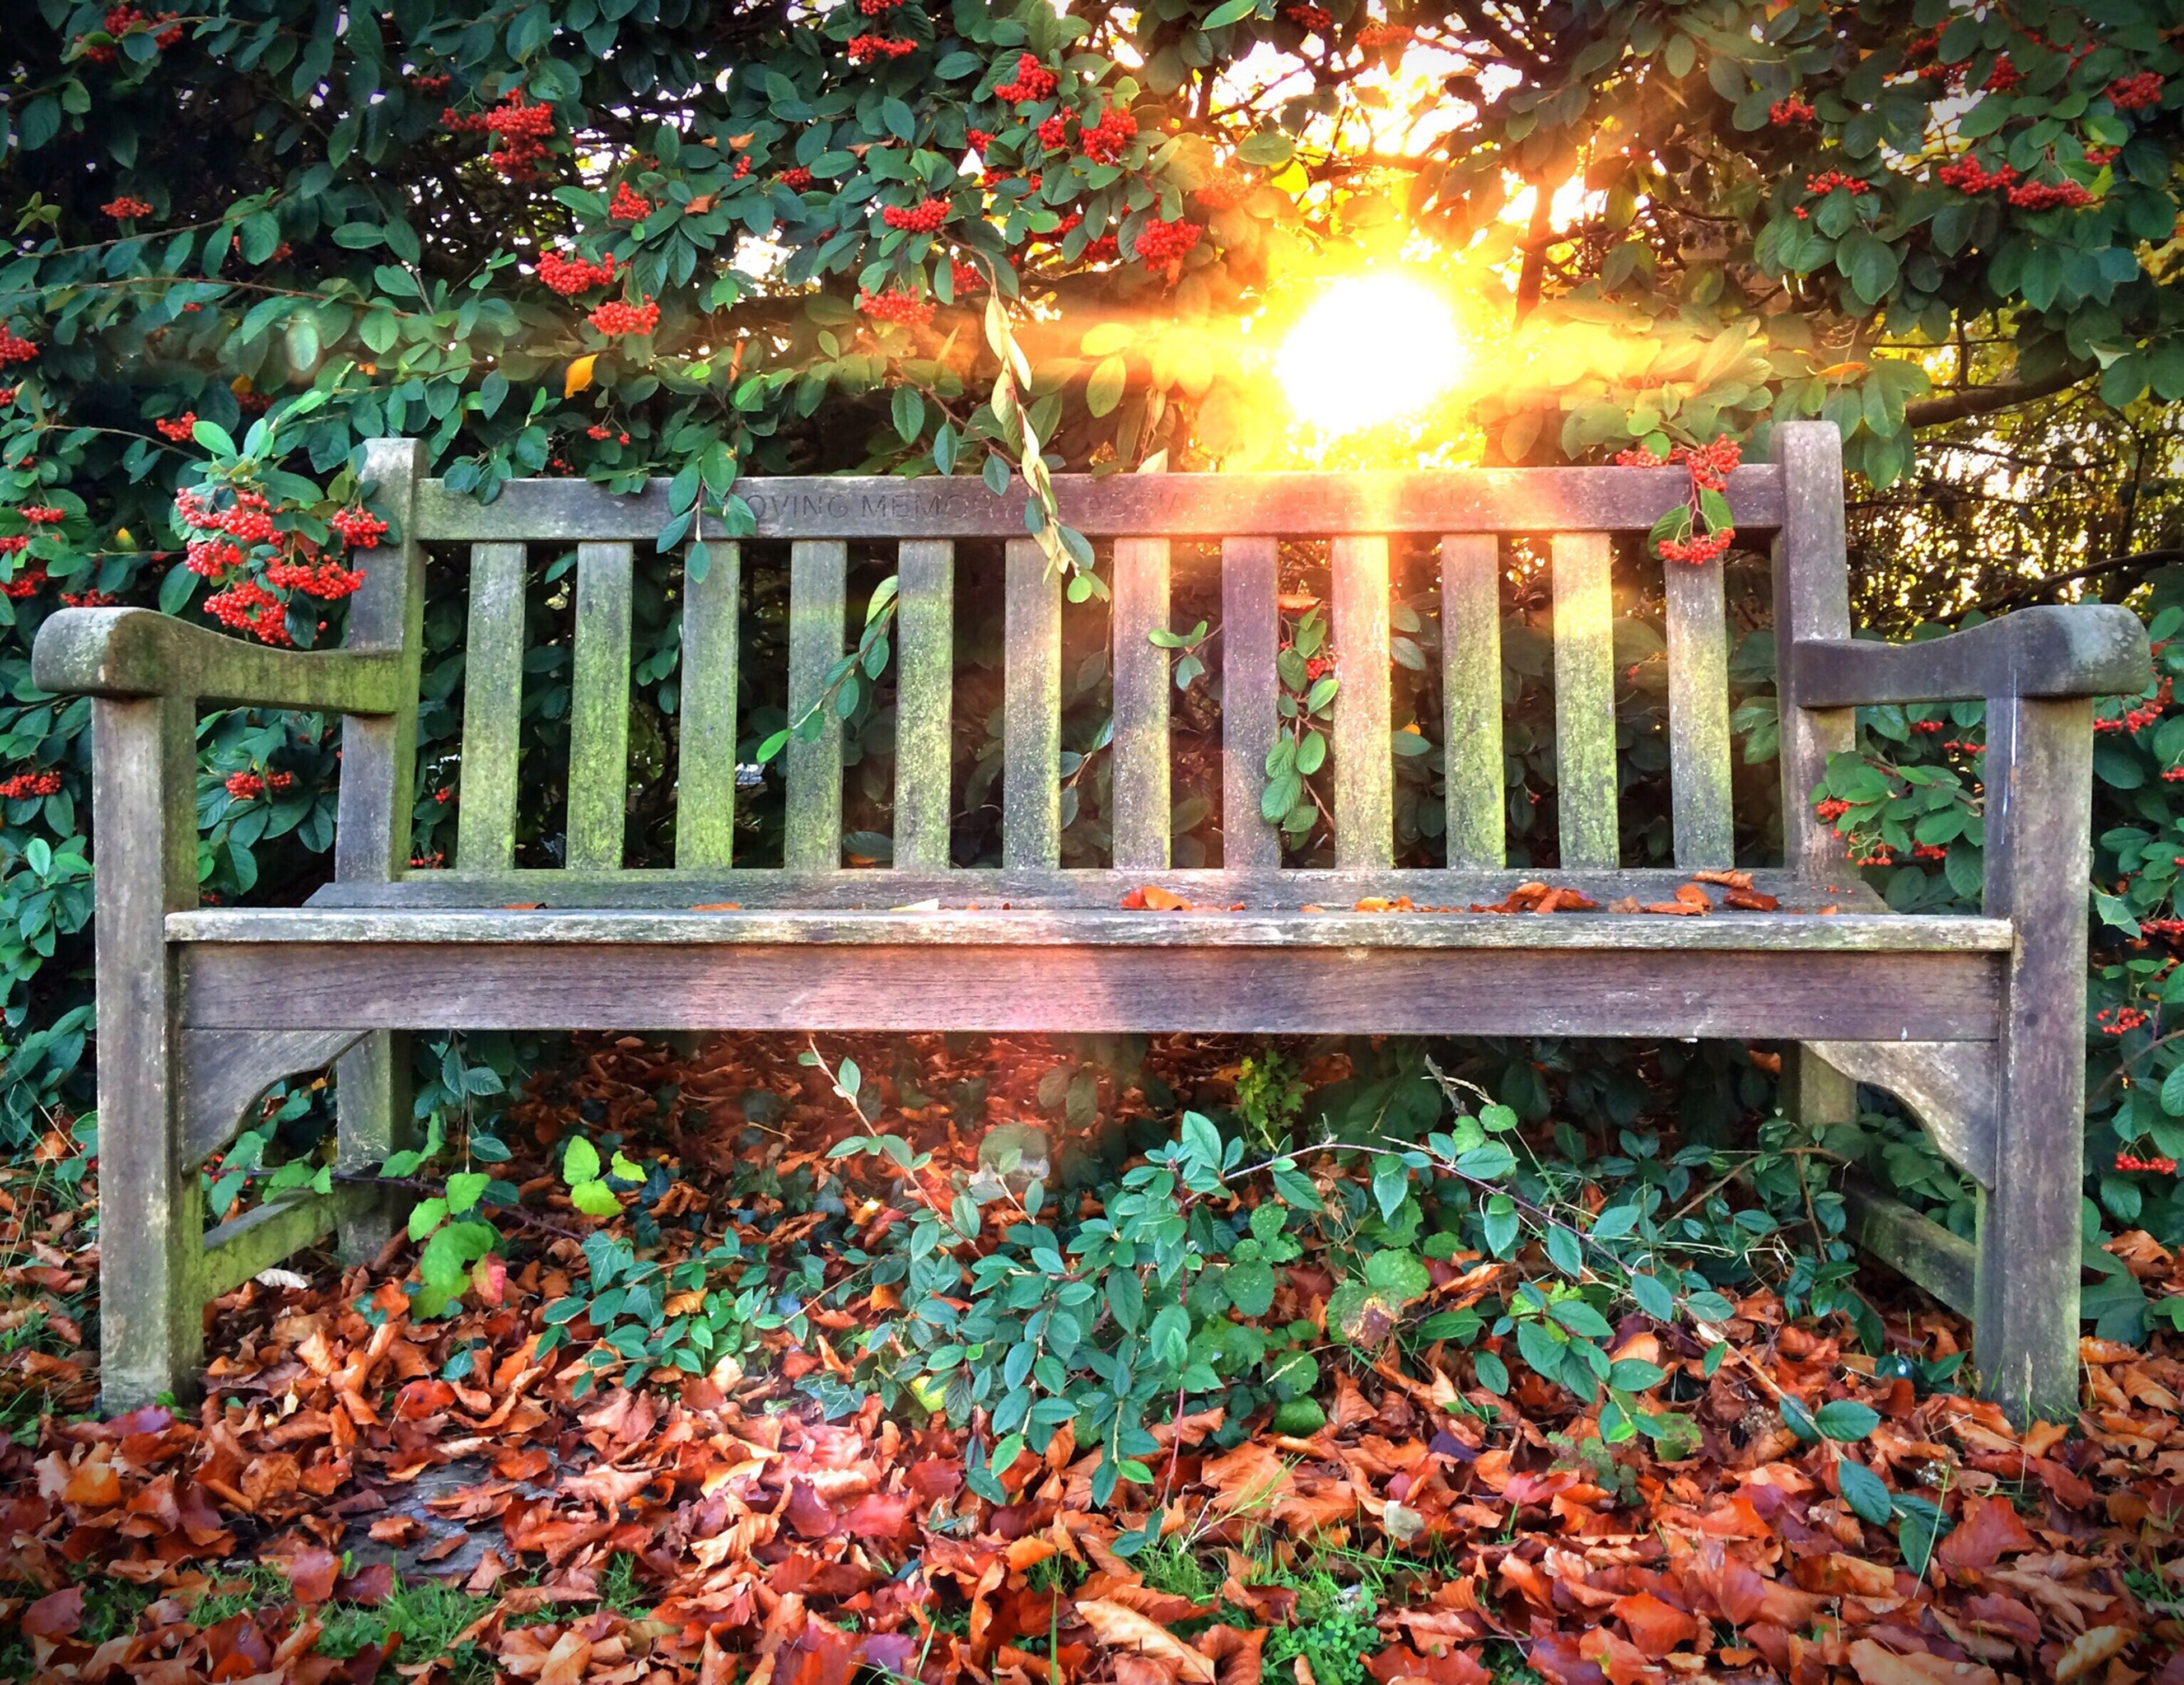 fence, leaf, sunlight, park - man made space, nature, autumn, plant, season, railing, wood - material, growth, tree, change, bench, tranquility, beauty in nature, outdoors, day, fallen, protection